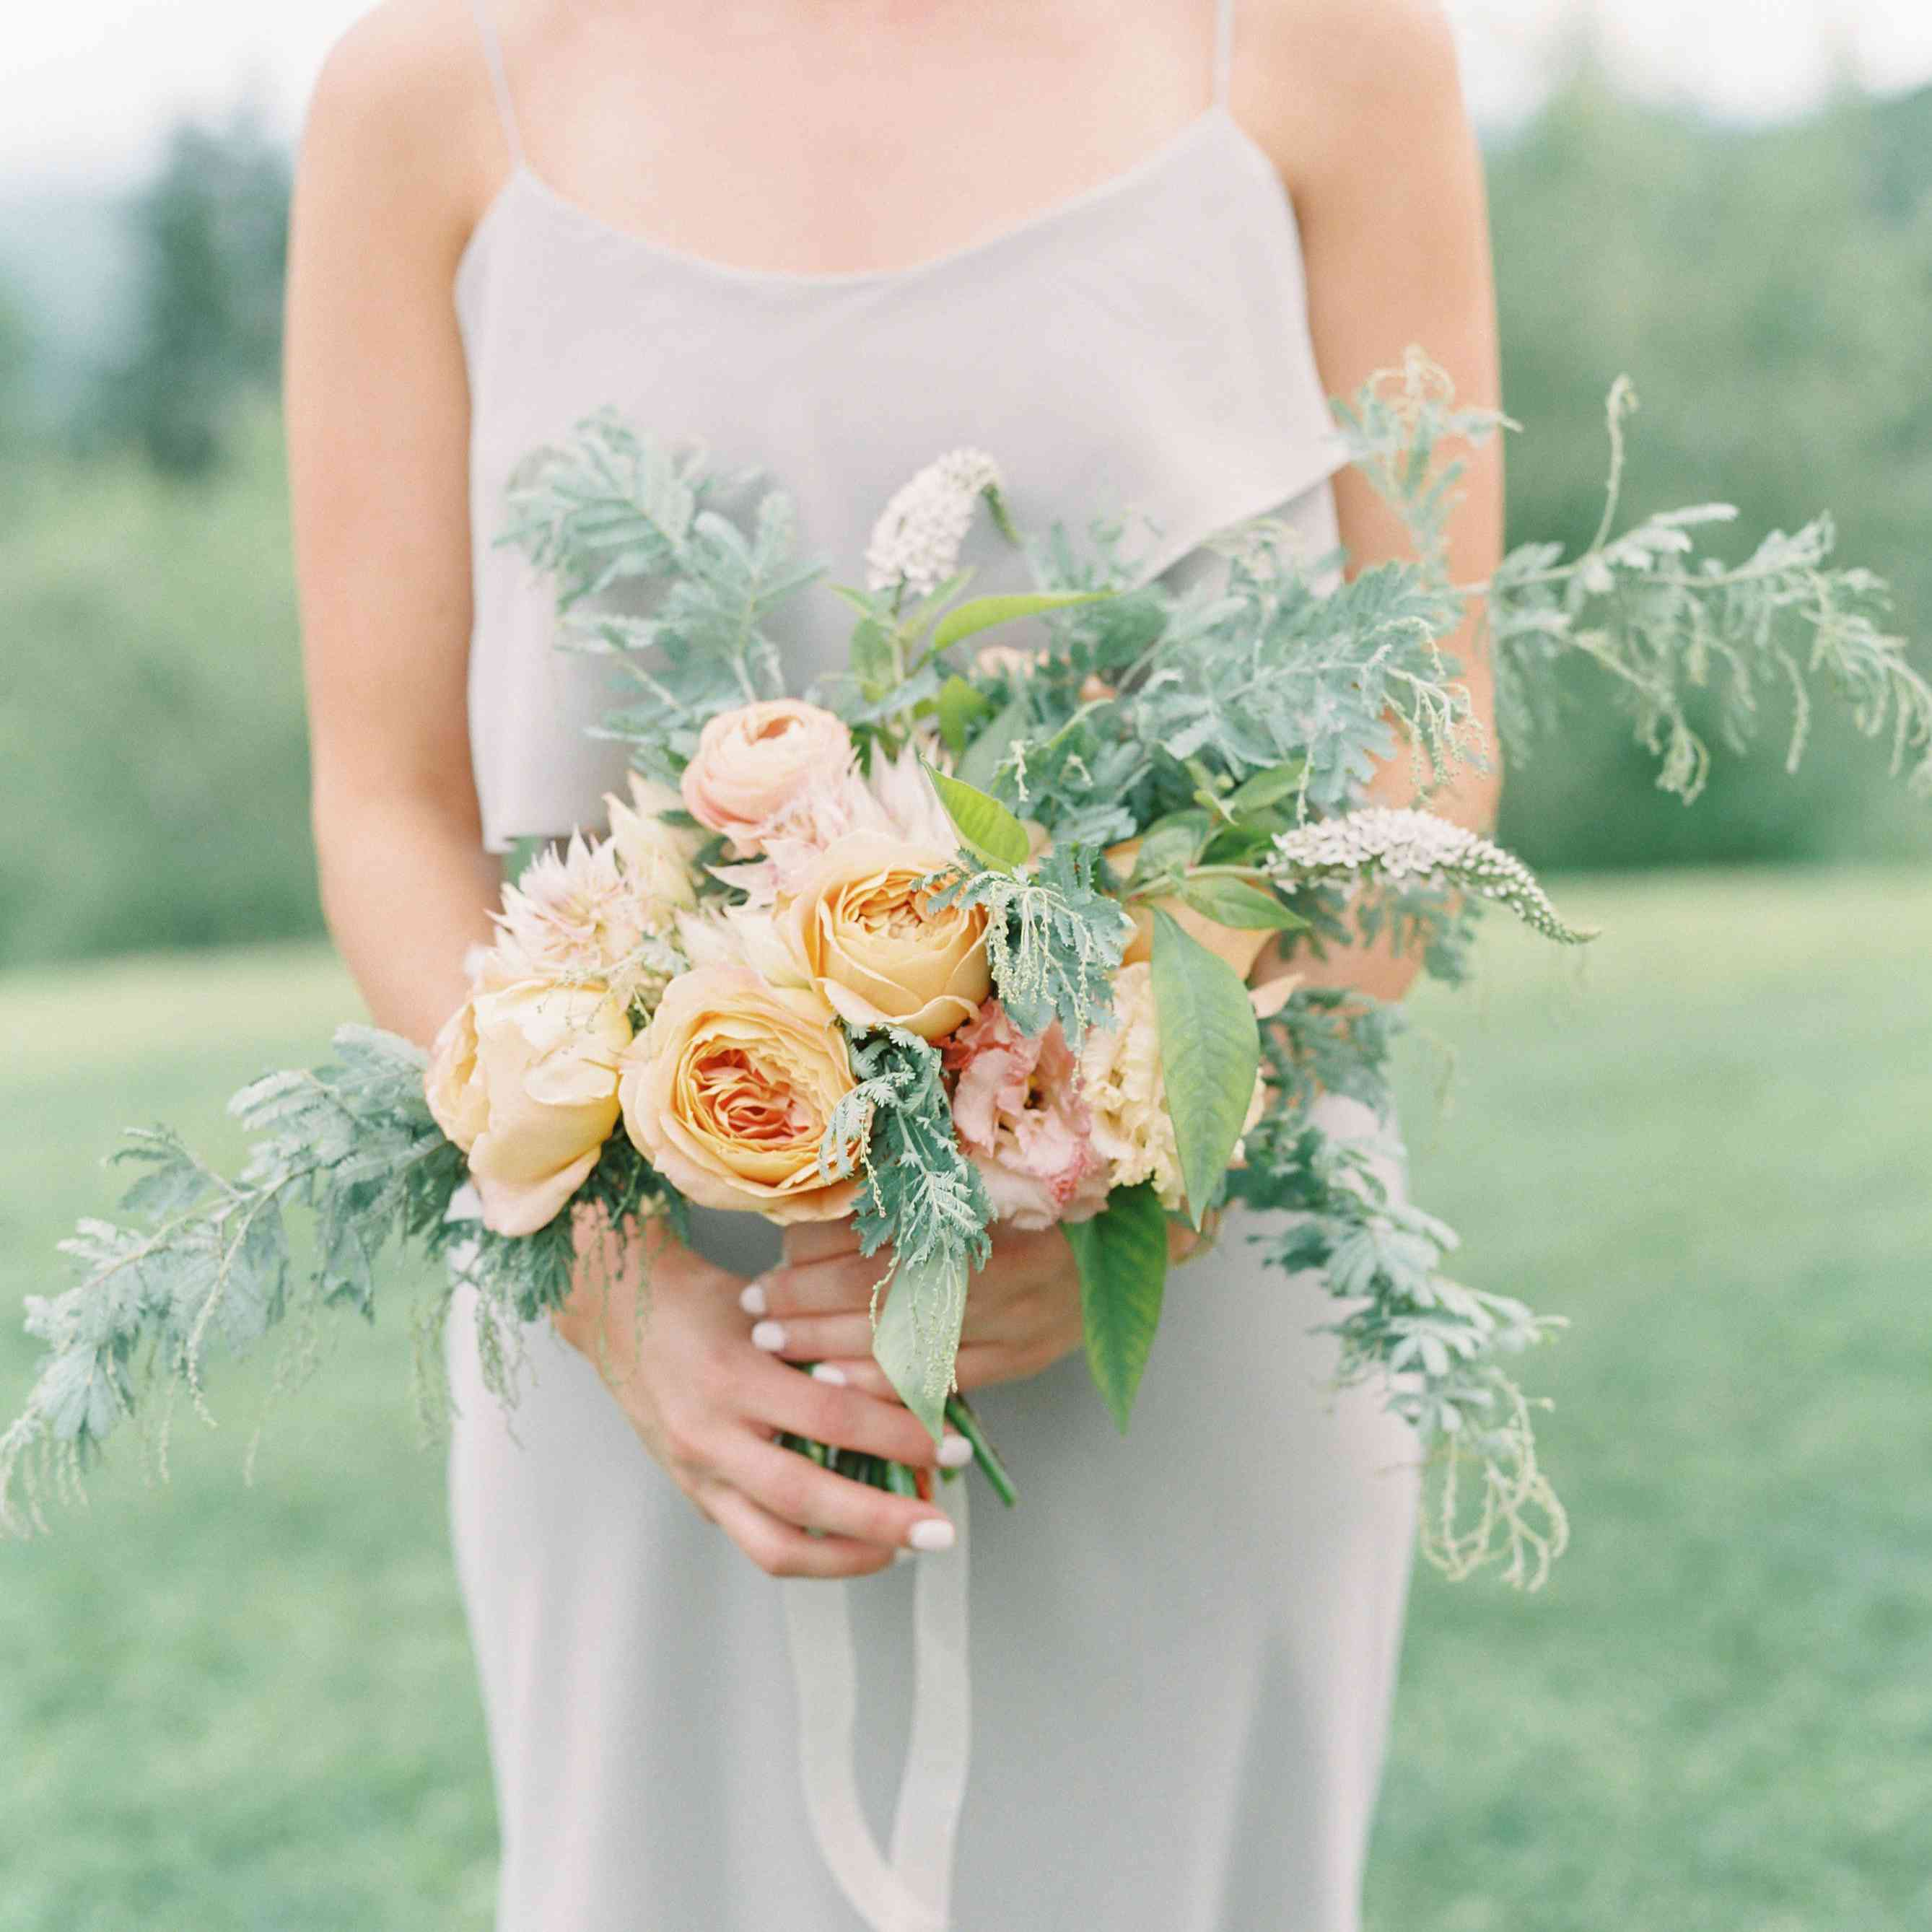 Bridesmaid carrying bouquet of peach and pink roses